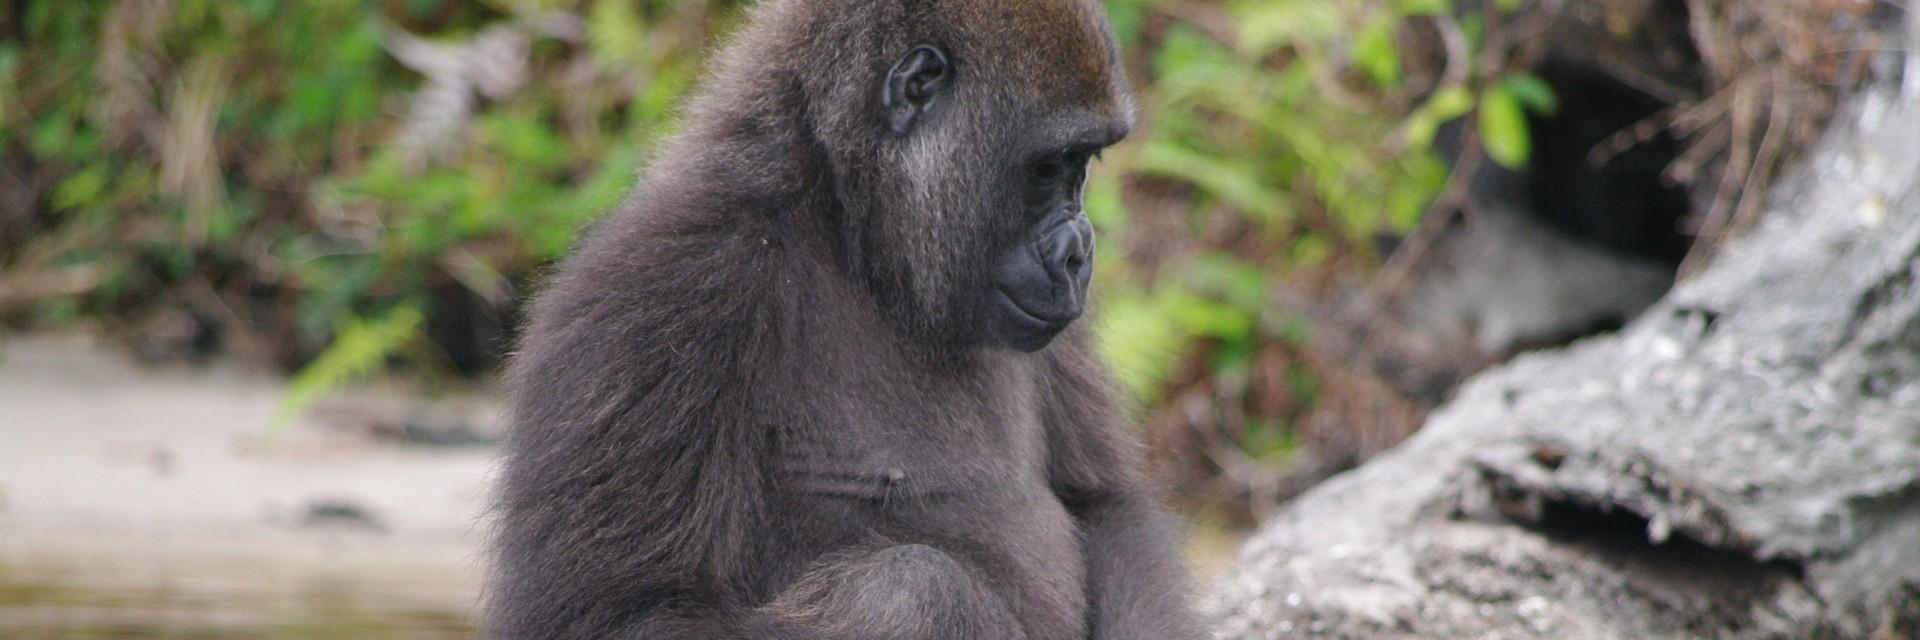 Gorilla playing with a stick